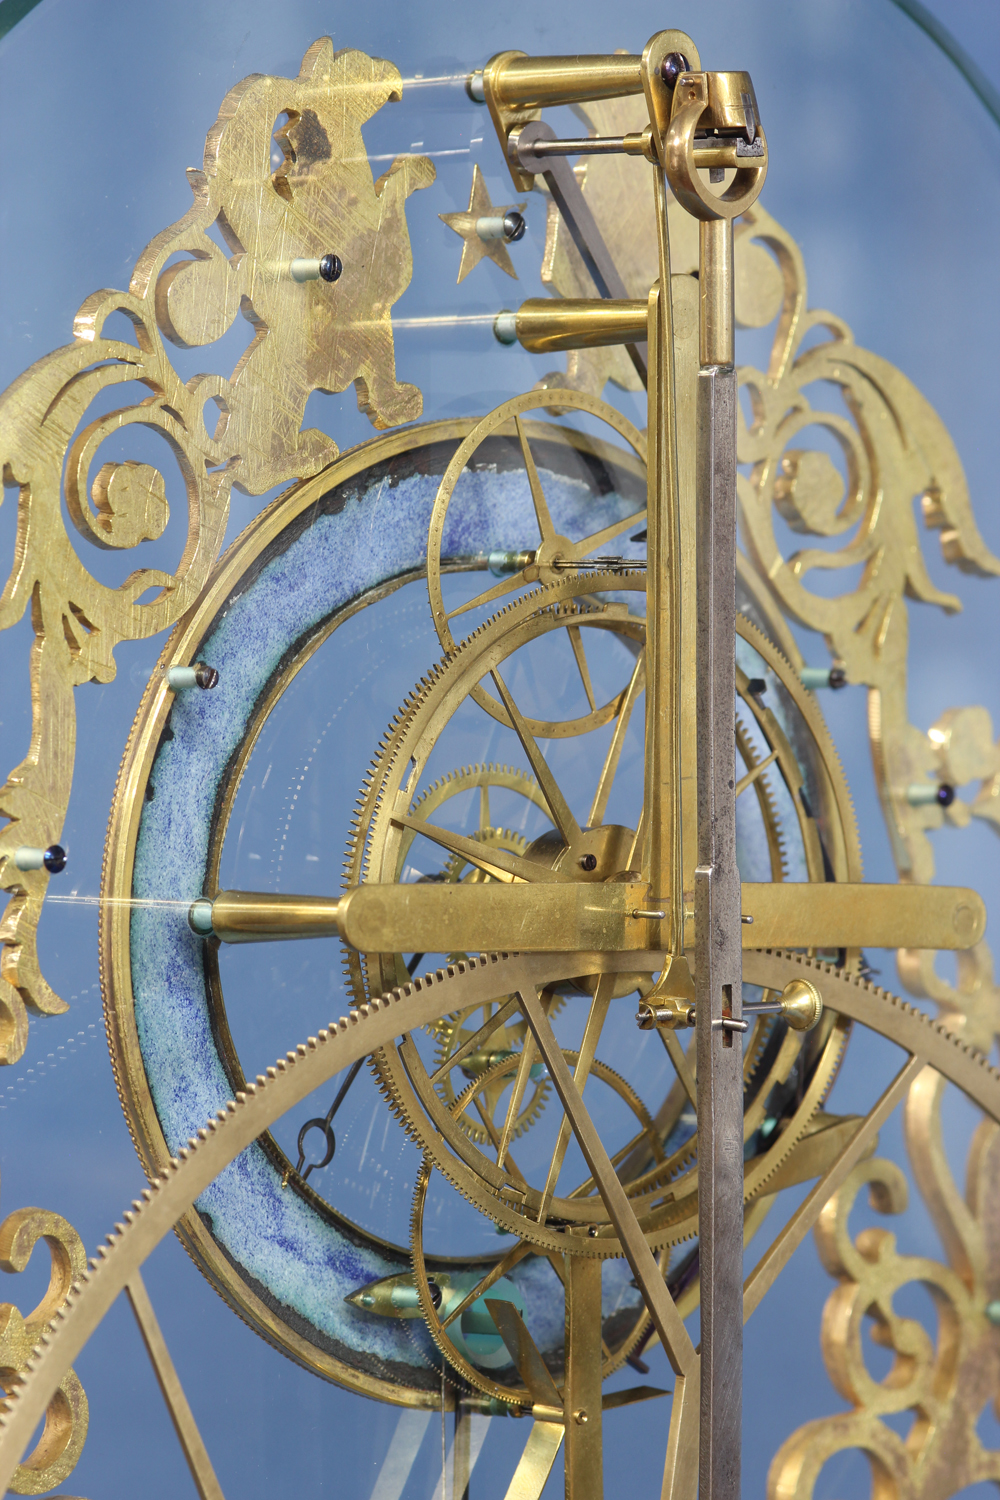 Rare French Glass-Plate Skeleton Clock with Remontoire Strike.